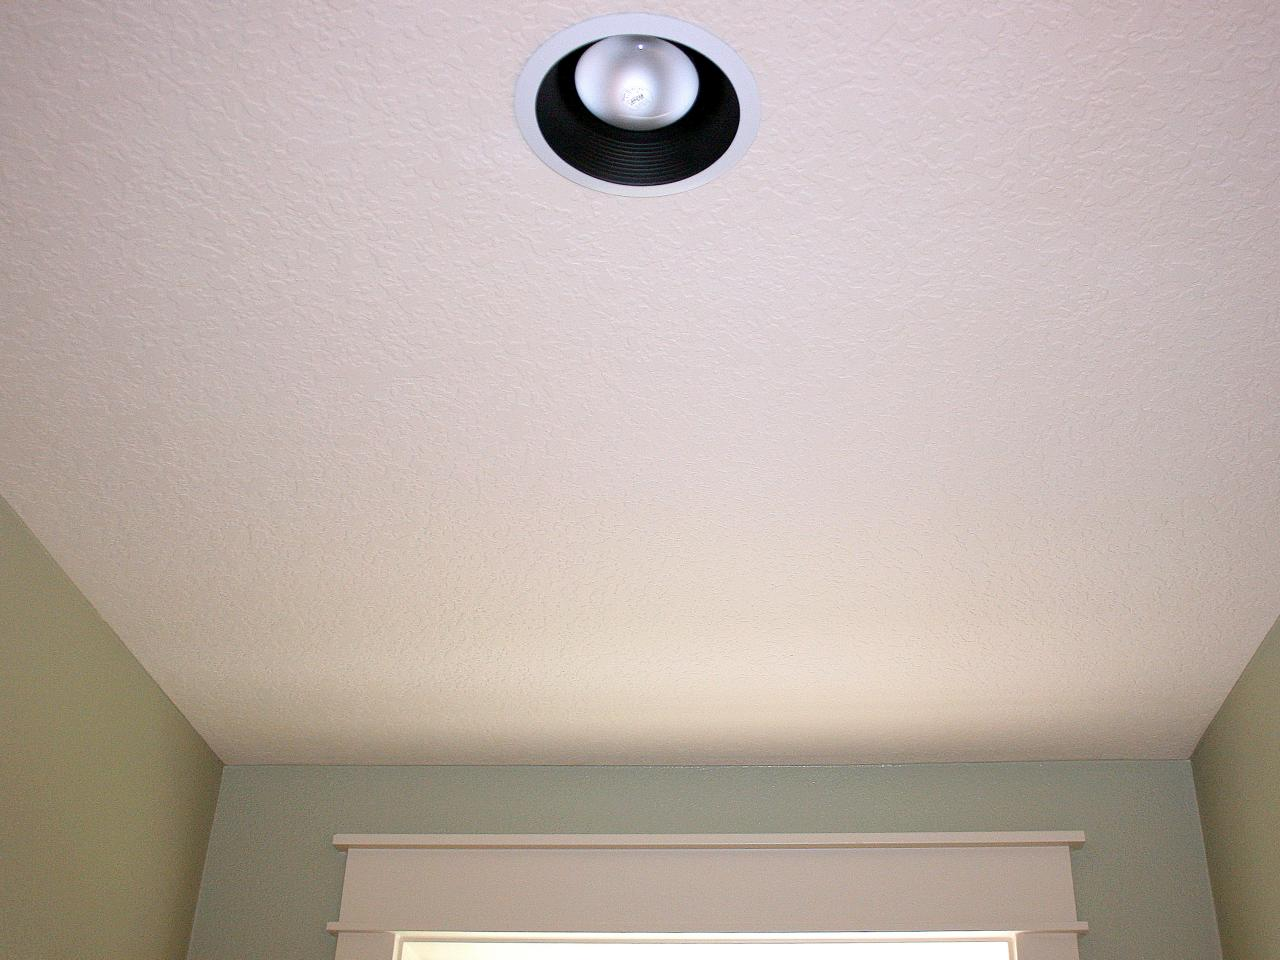 Replace Recessed Light With A Pendant Fixture Hgtv Installing Ceiling Fan Wiring Choose To Convert